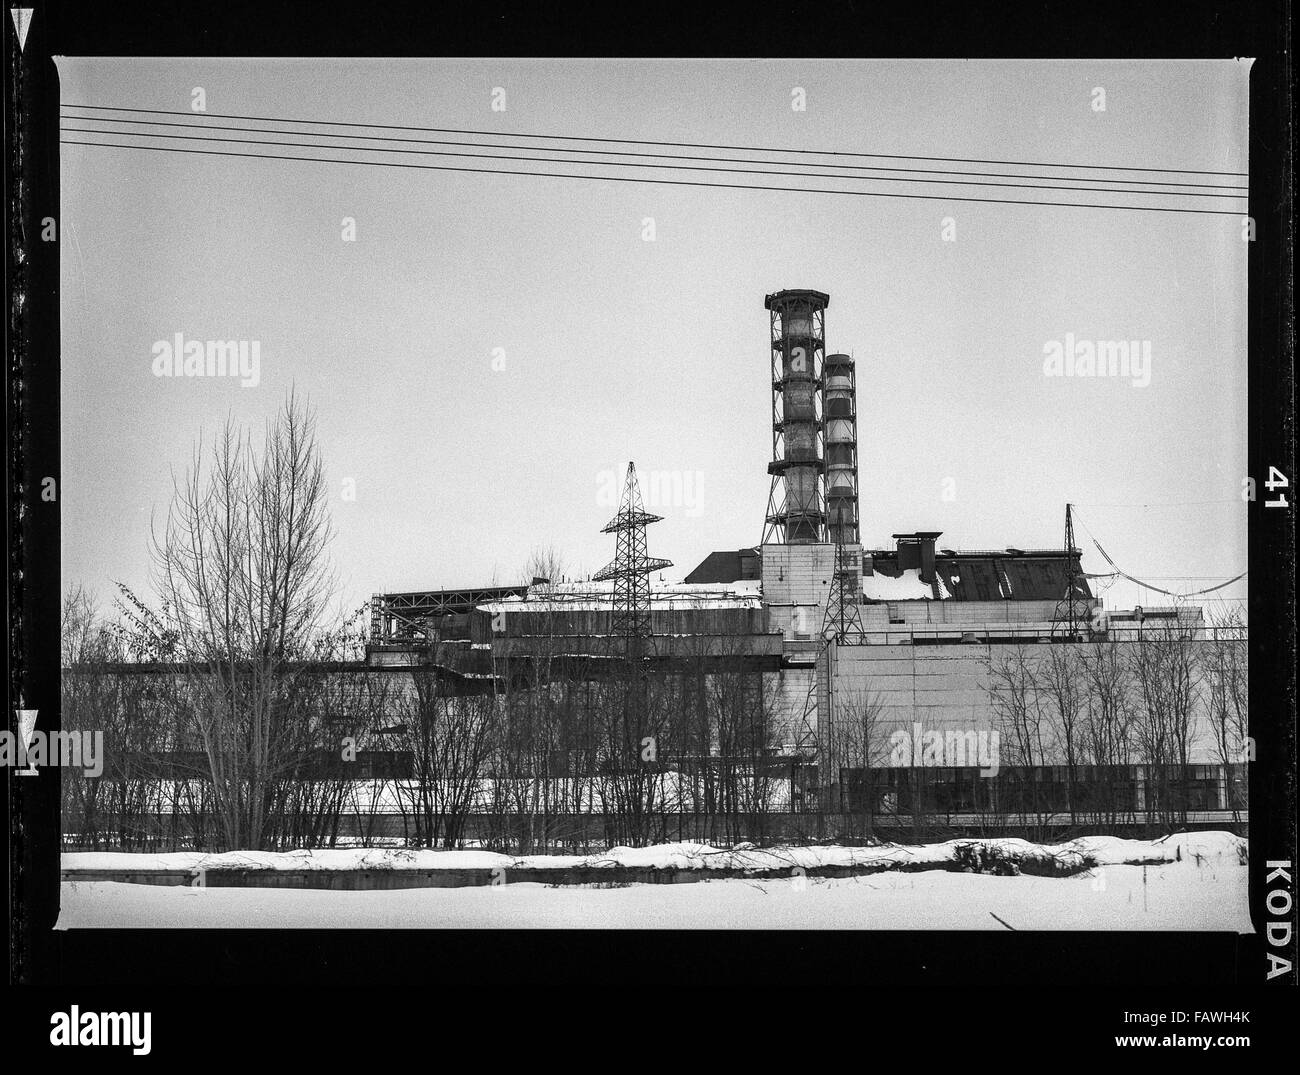 Chernobyl reactor - Impressions from Pripyat, a ghost town in the Ukraine, which was established in 1970 in connection - Stock Image